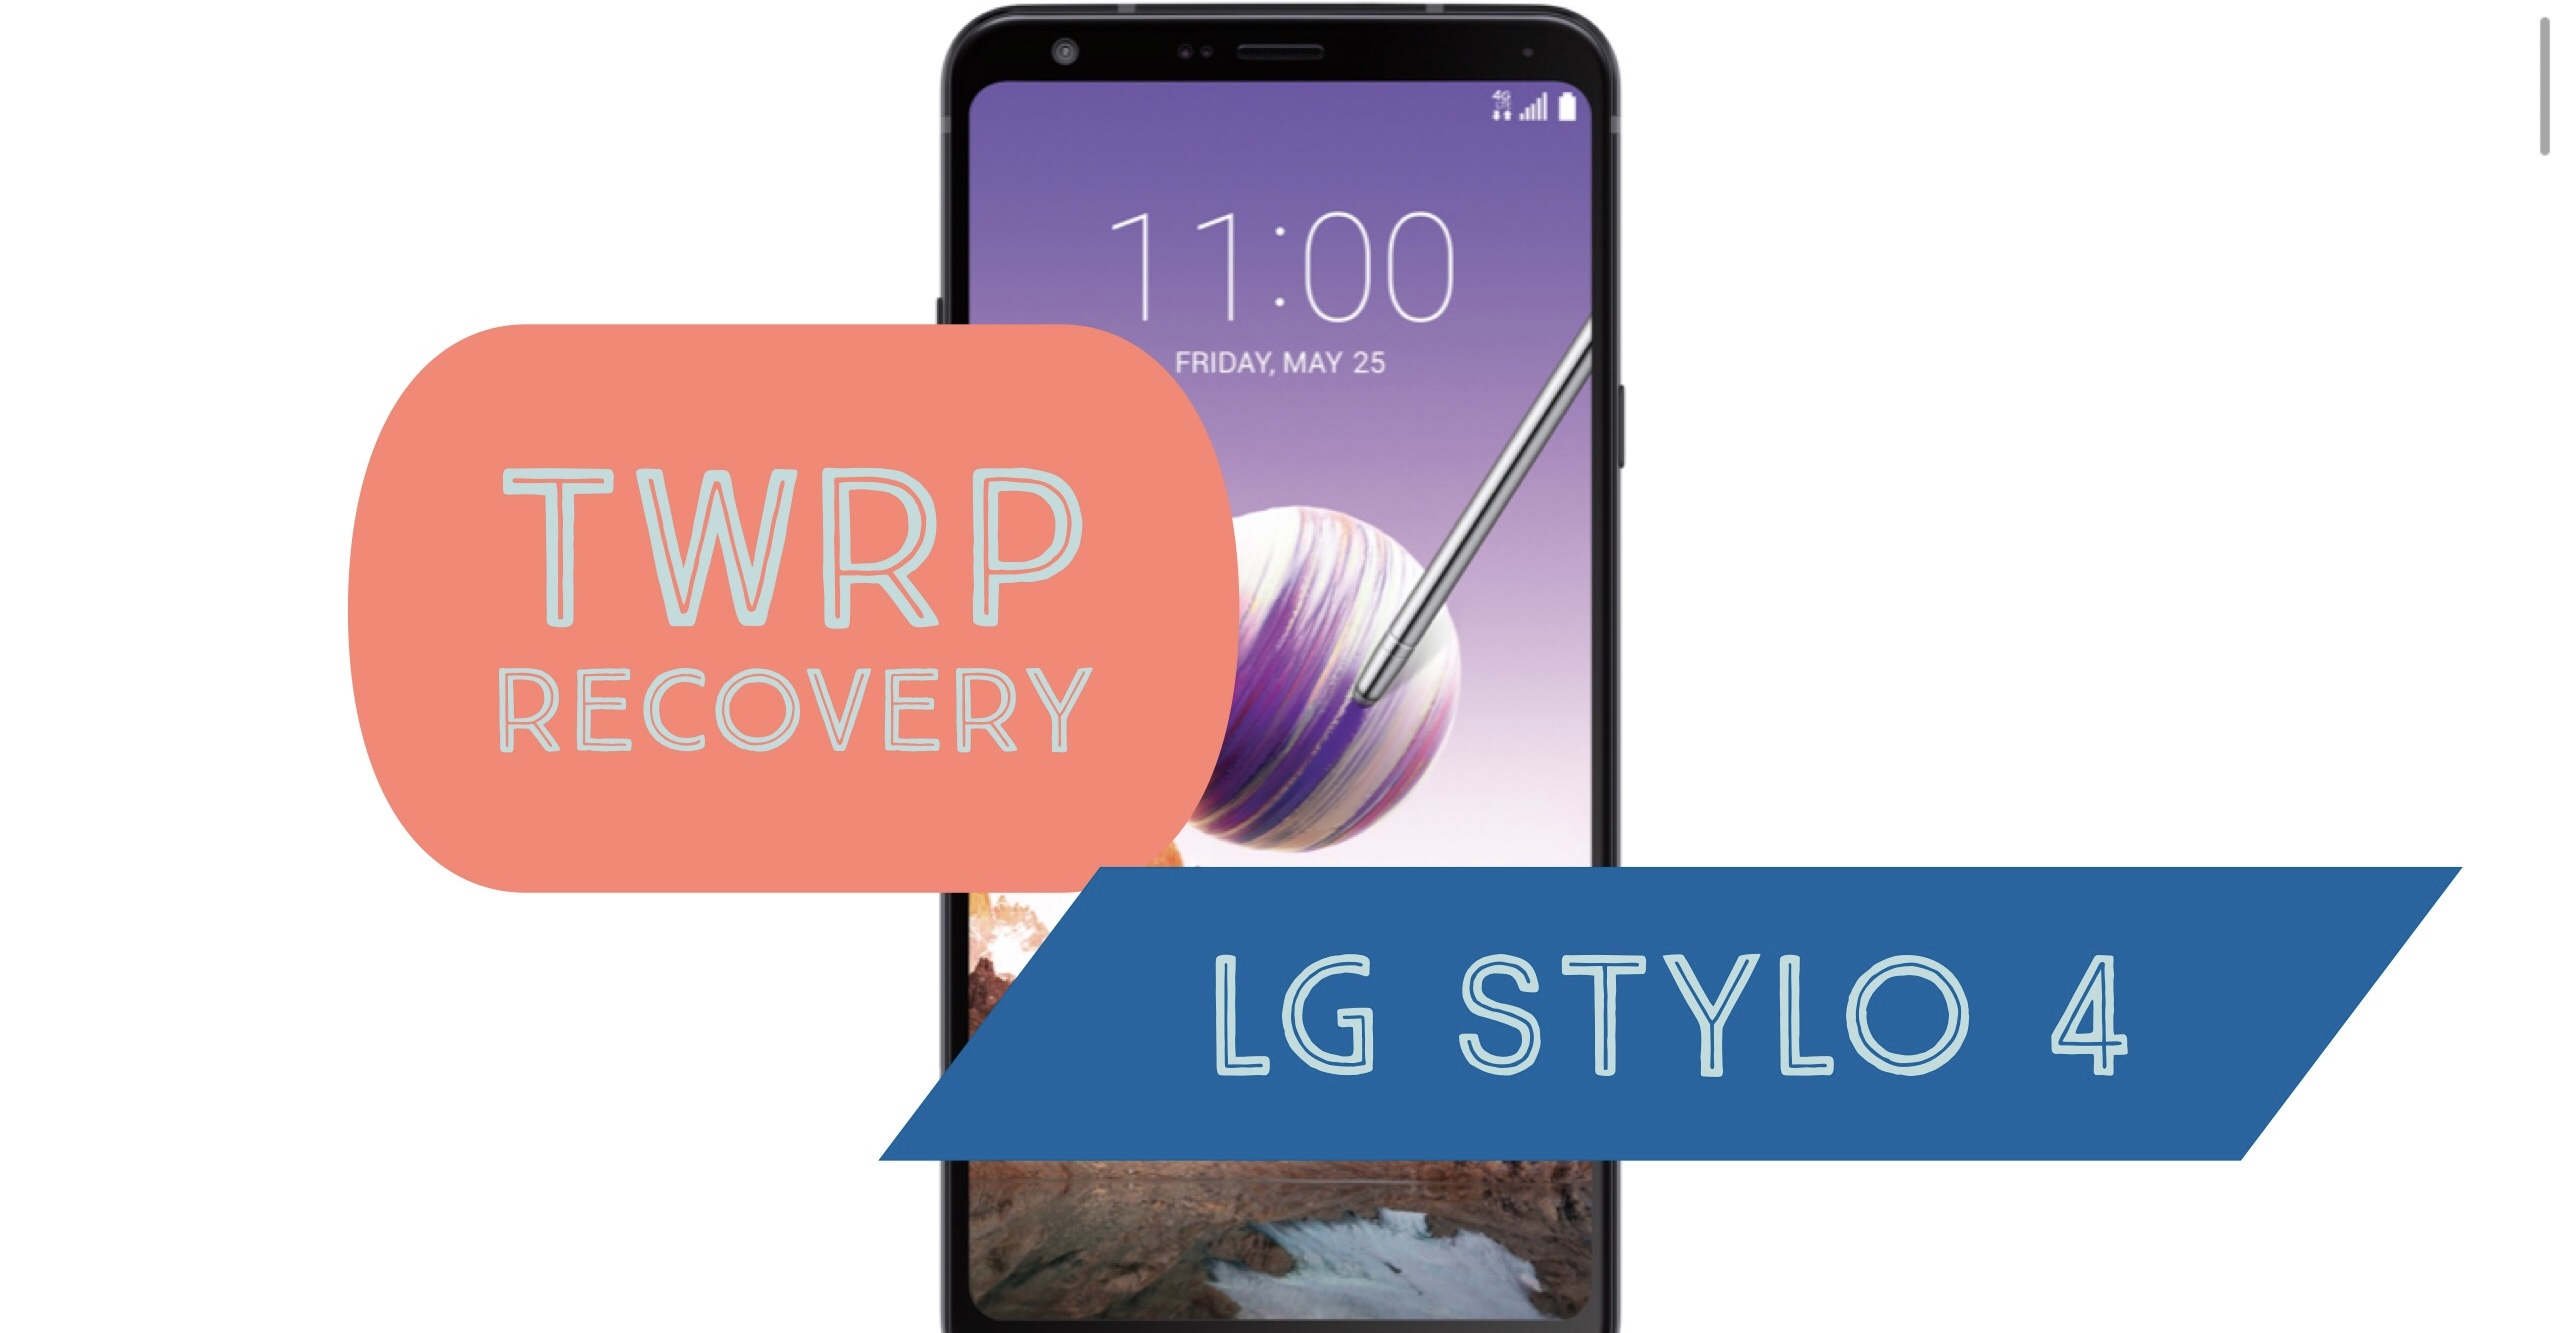 How to Install TWRP Recovery on LG Stylo 4? TWO METHODS!